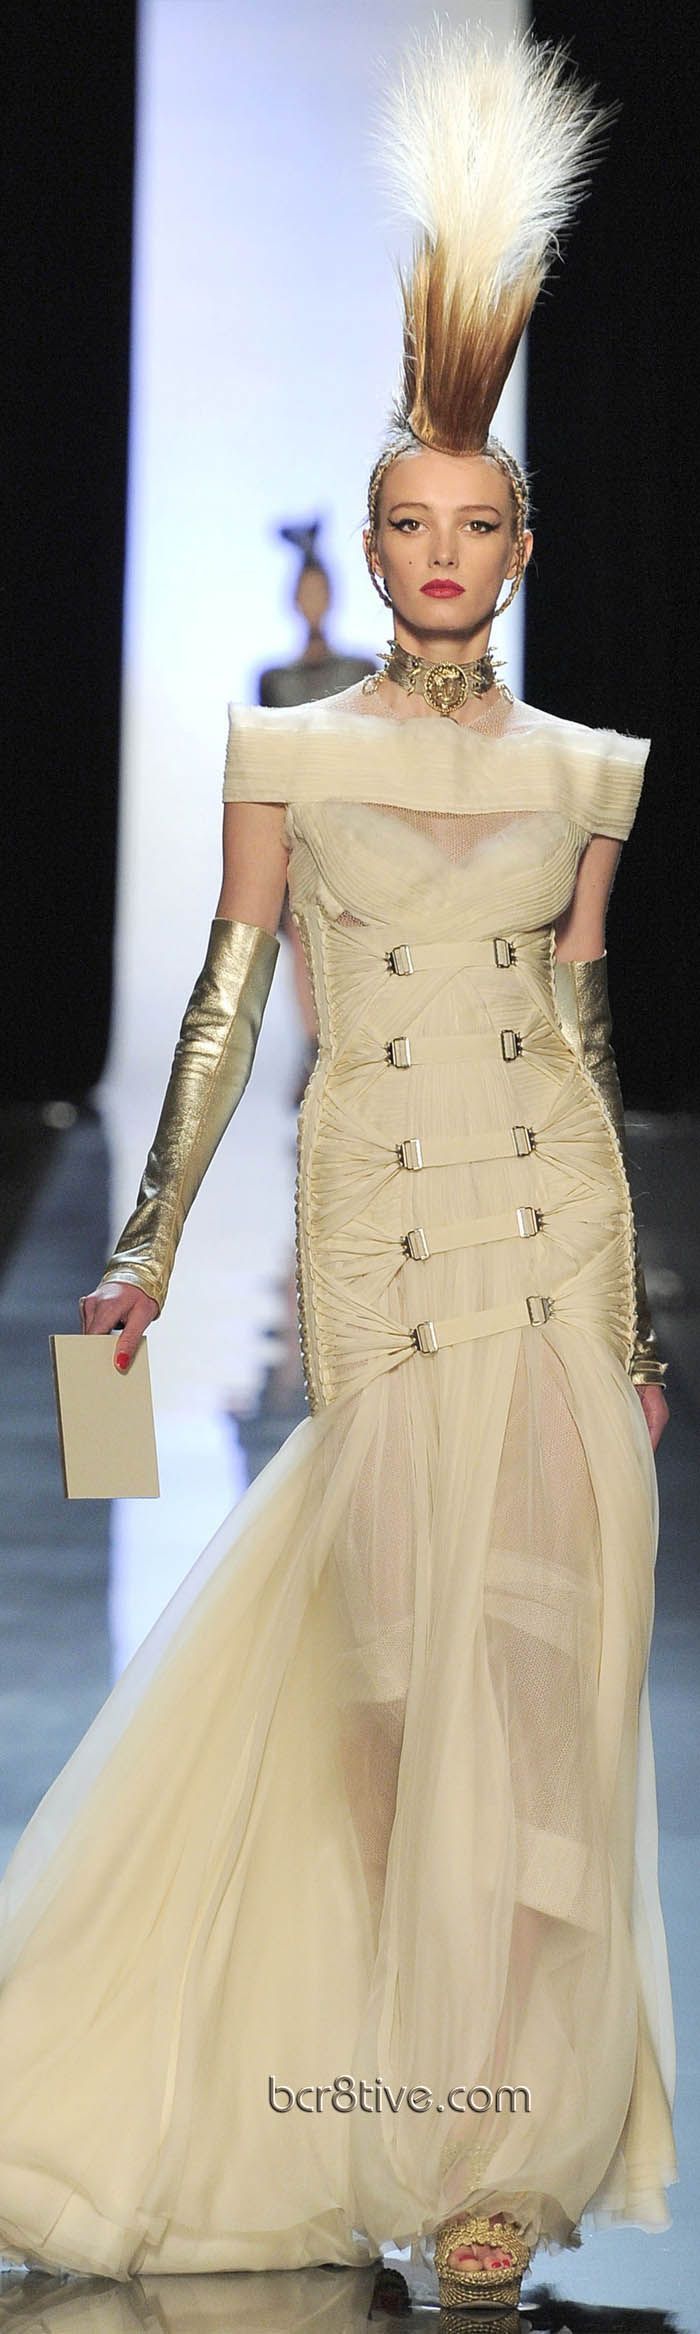 Jean Paul Gaultier Haute Couture Spring Summer 2011 | The House of Beccaria